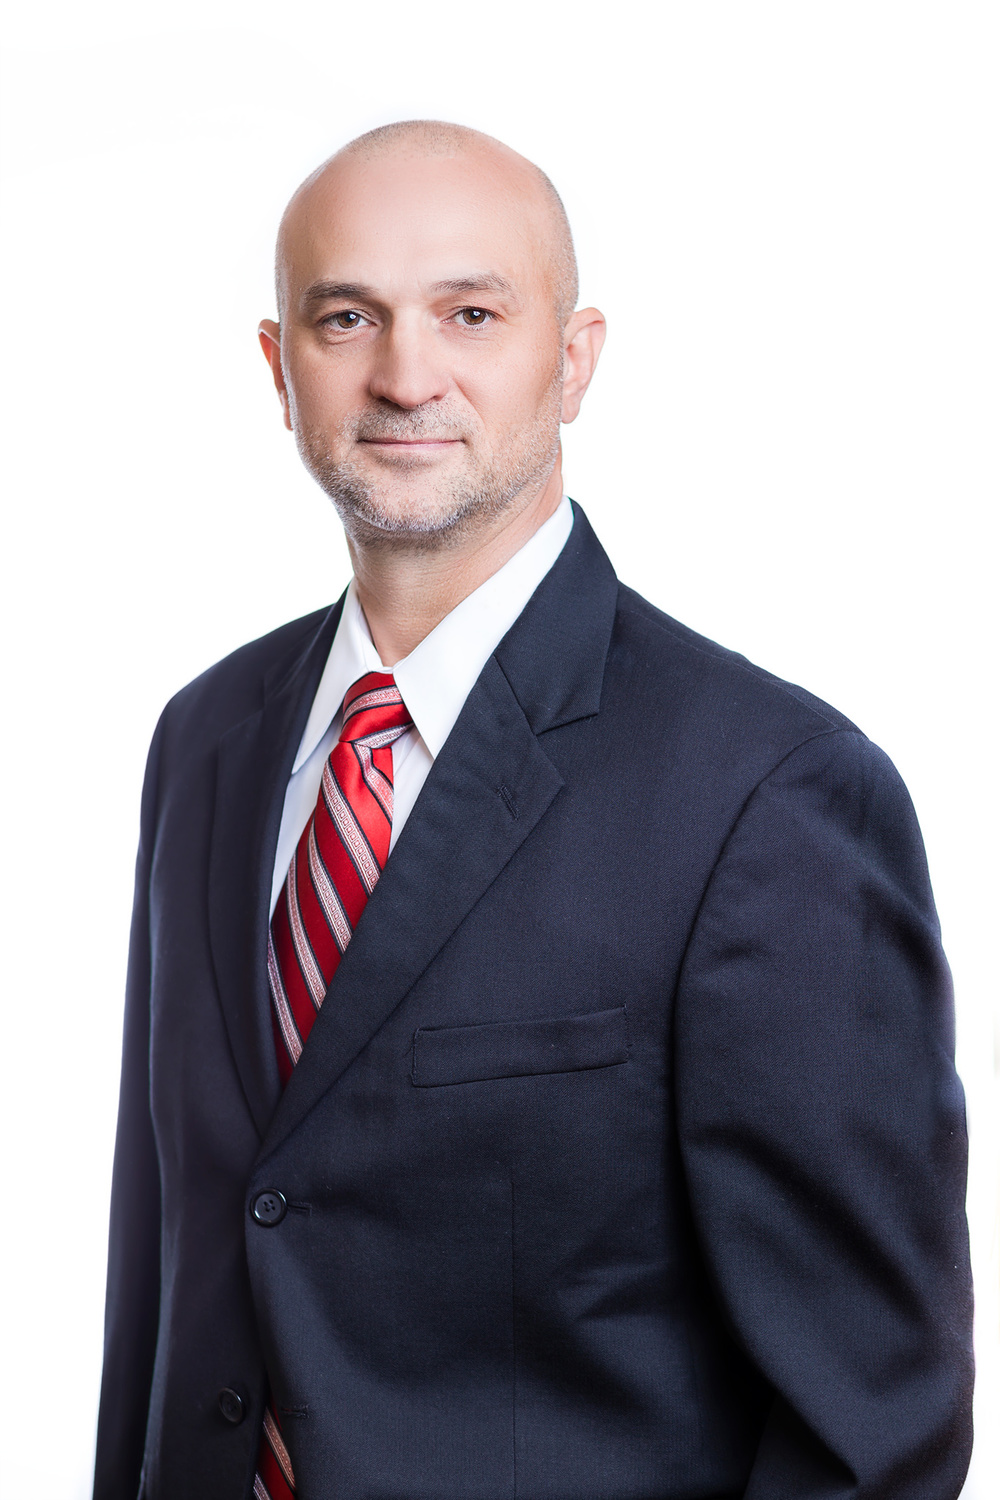 Financial Advisor Headshot - Scottsdale, AZ